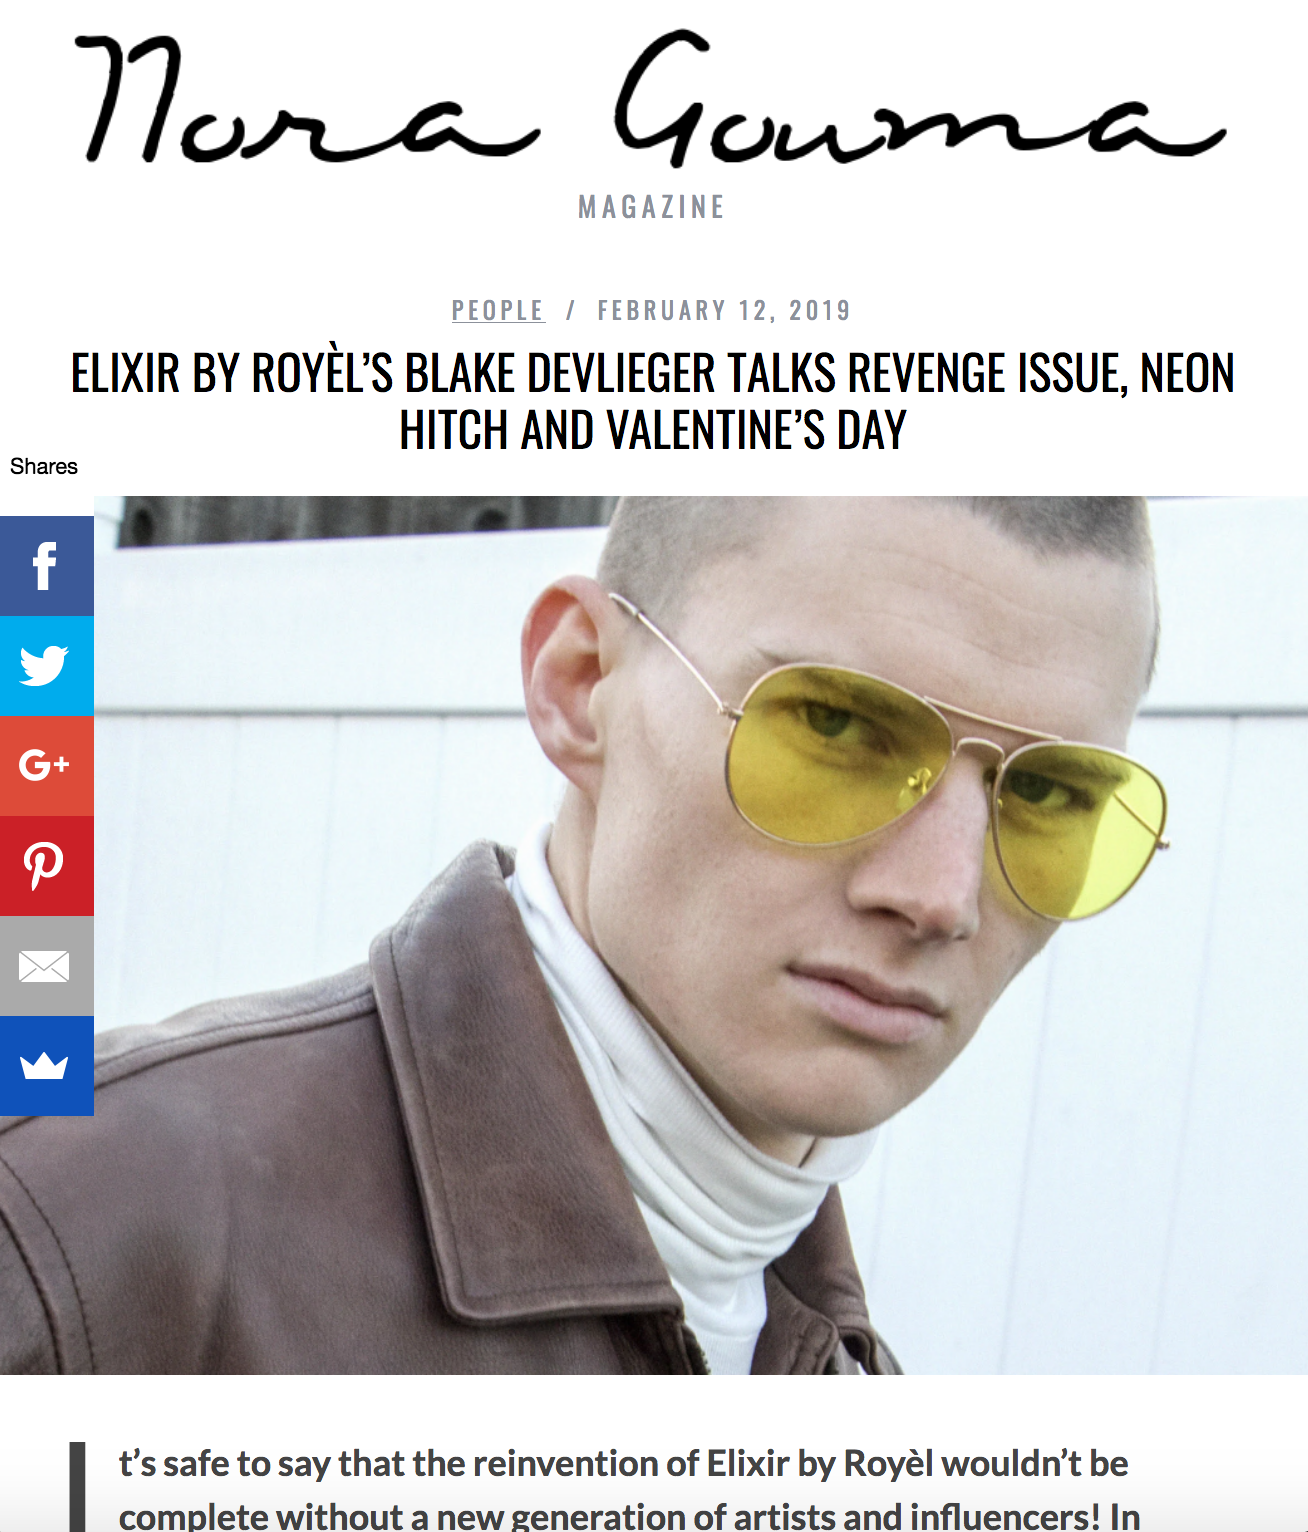 ELIXIR BY ROYÈL'S BLAKE DEVLIEGER TALKS REVENGE ISSUE, NEON HITCH AND VALENTINE'S DAY - It's safe to say that the reinvention of Elixir by Royèl wouldn't be complete without a new generation of artists and influencers! In February, Mitchell Royèl announced that he would be casting up to 50 social media influencers and artists to be featured in the next issue of his magazine. We got a chance to interview one of the latest additions to the Elixir by Royèl family, model and influencer Blake DeVieger.